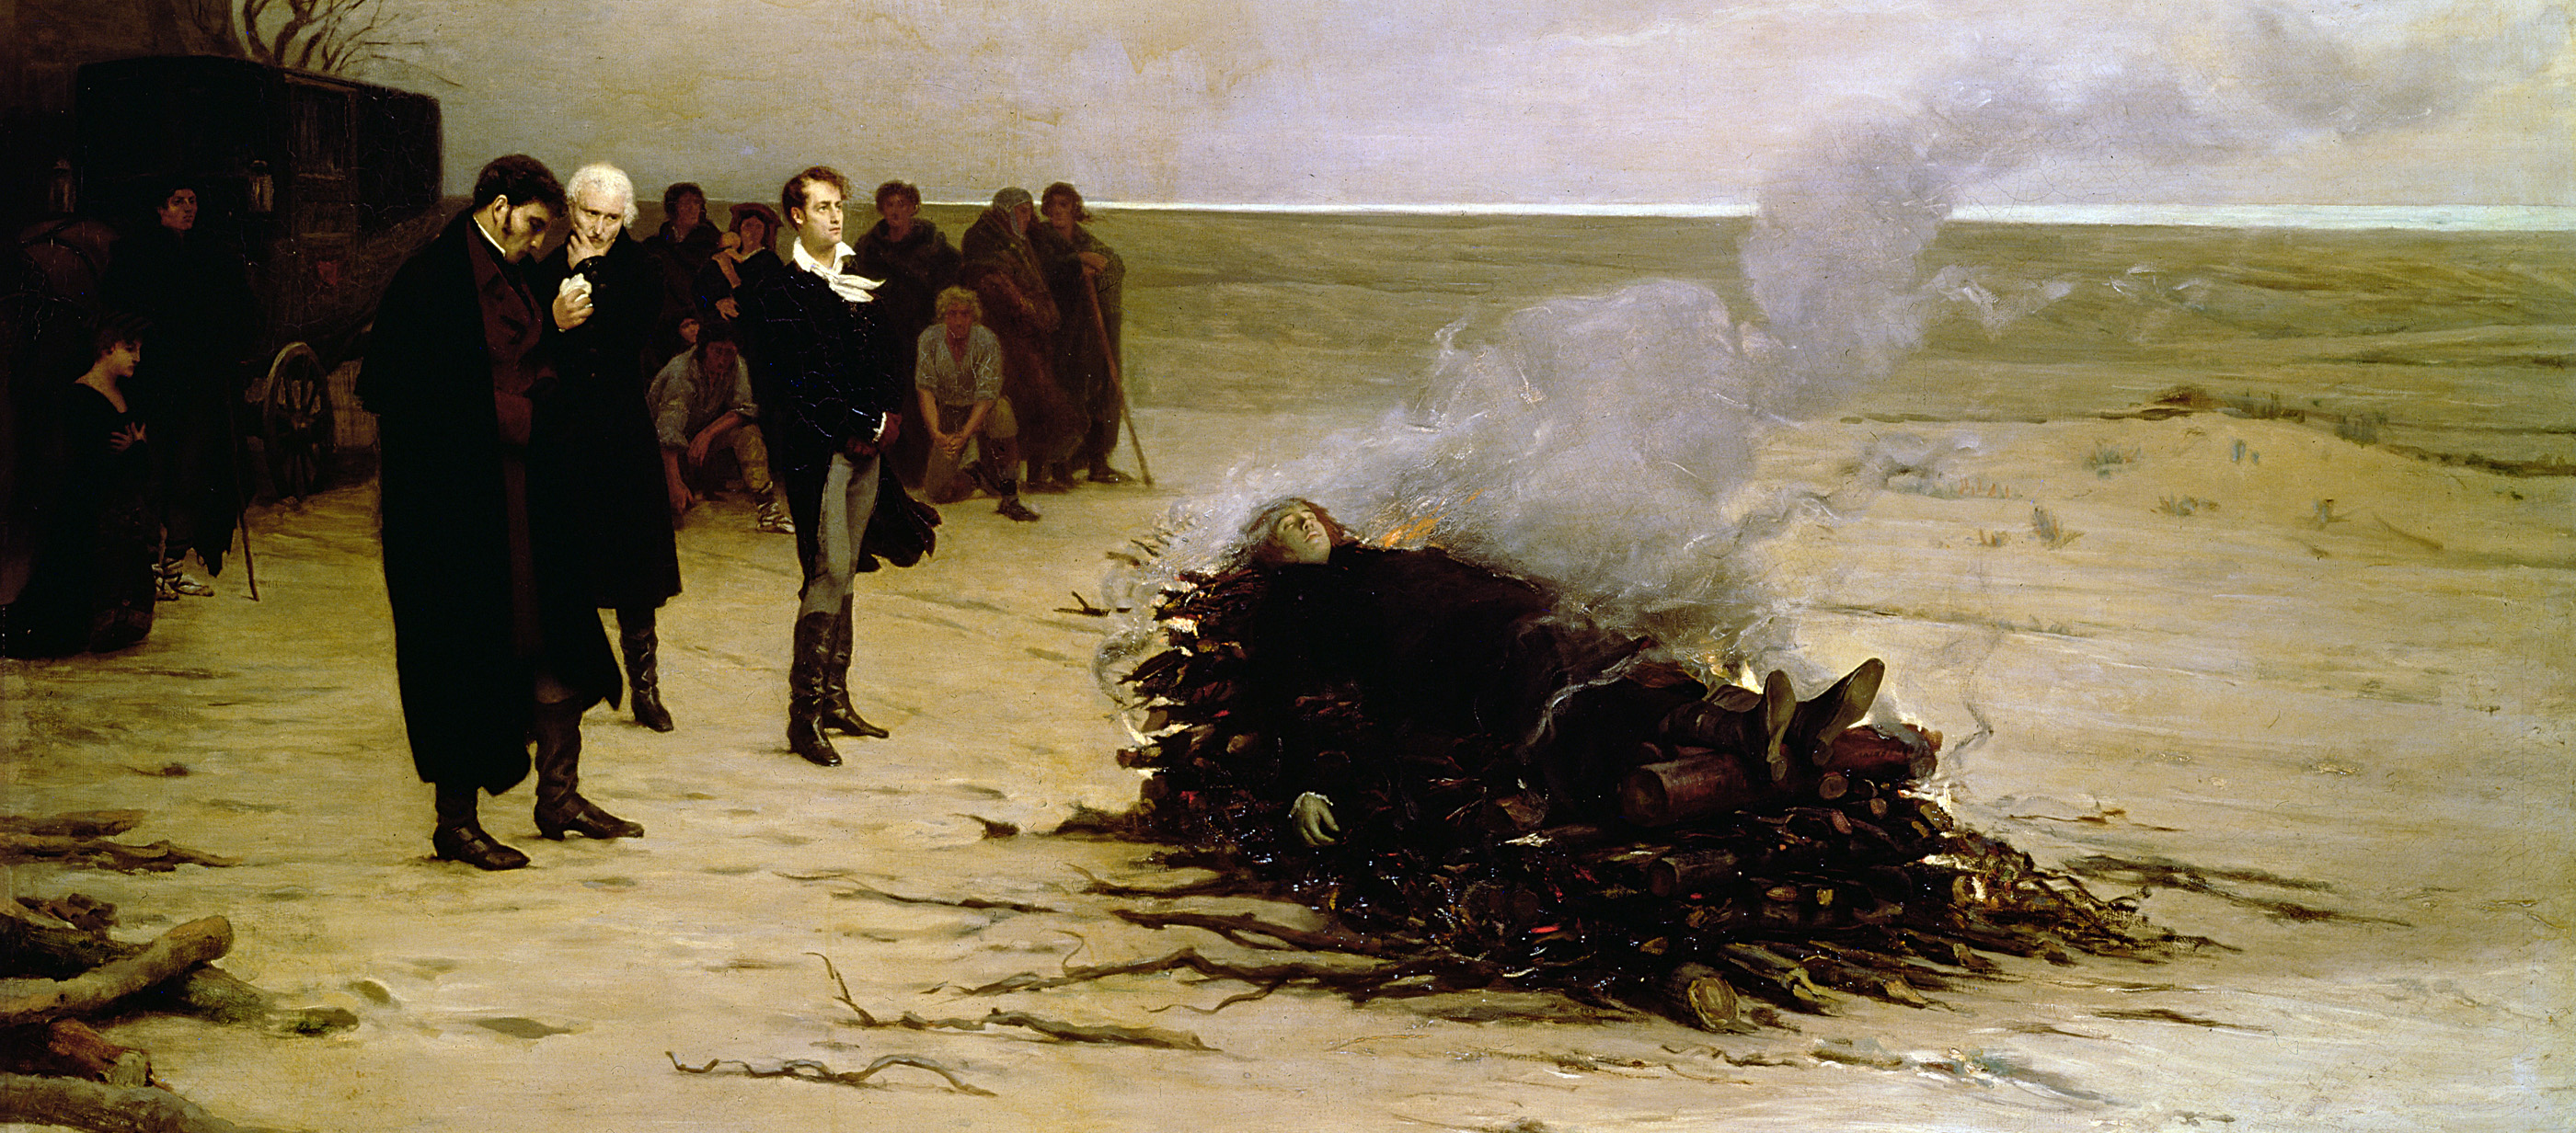 The Funeral of Shelley, by Louis-Edouard Fournier, 1889. Walker Art Gallery, Liverpool, England.